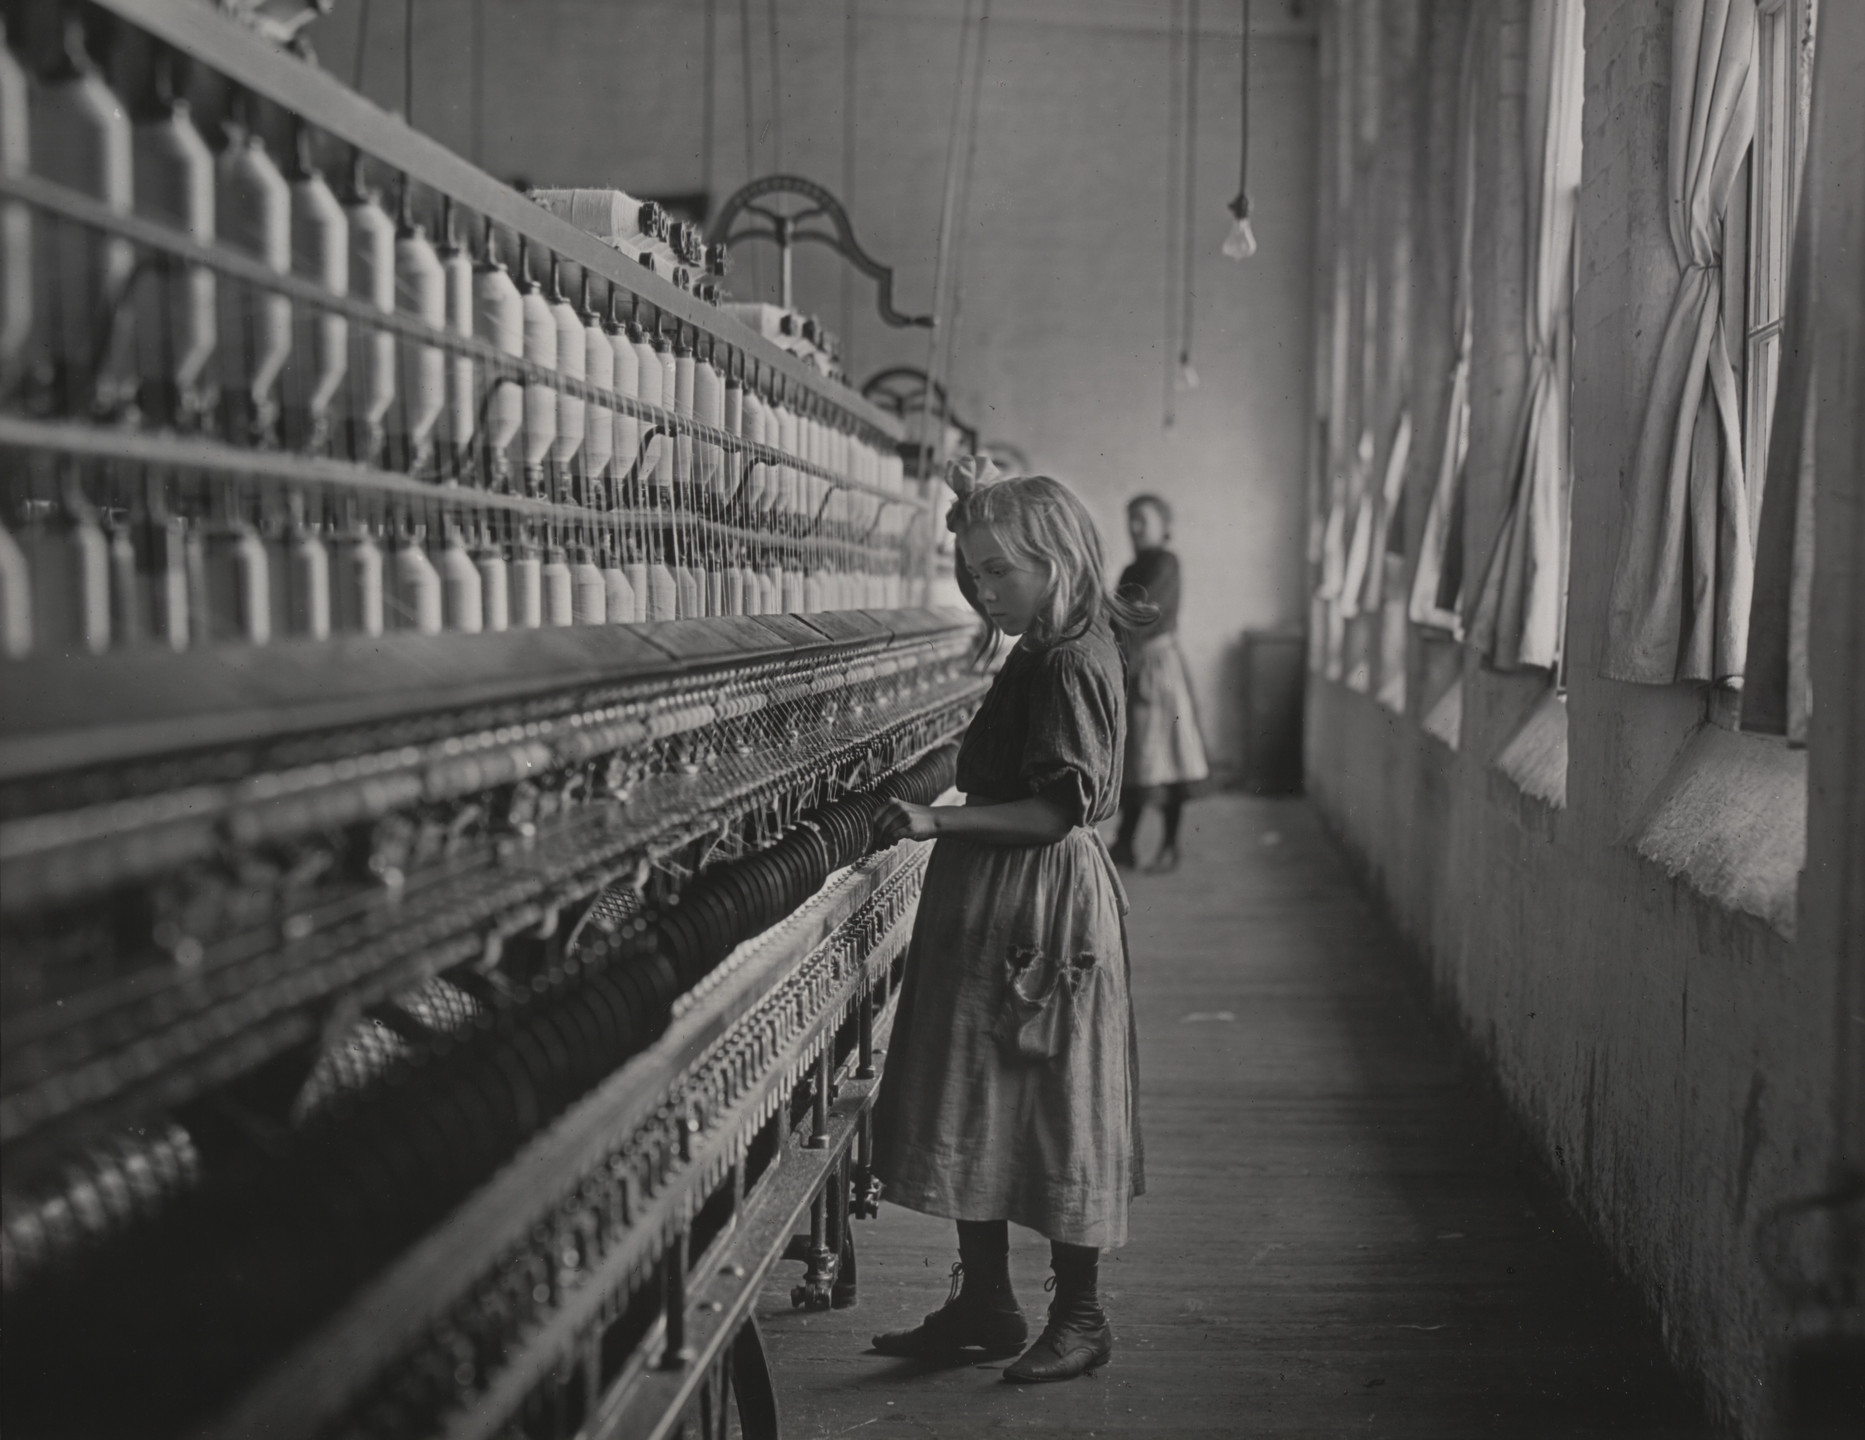 Lewis W. Hine. Sadie Pfeifer, a Cotton Mill Spinner, Lancaster, South Carolina. 1908